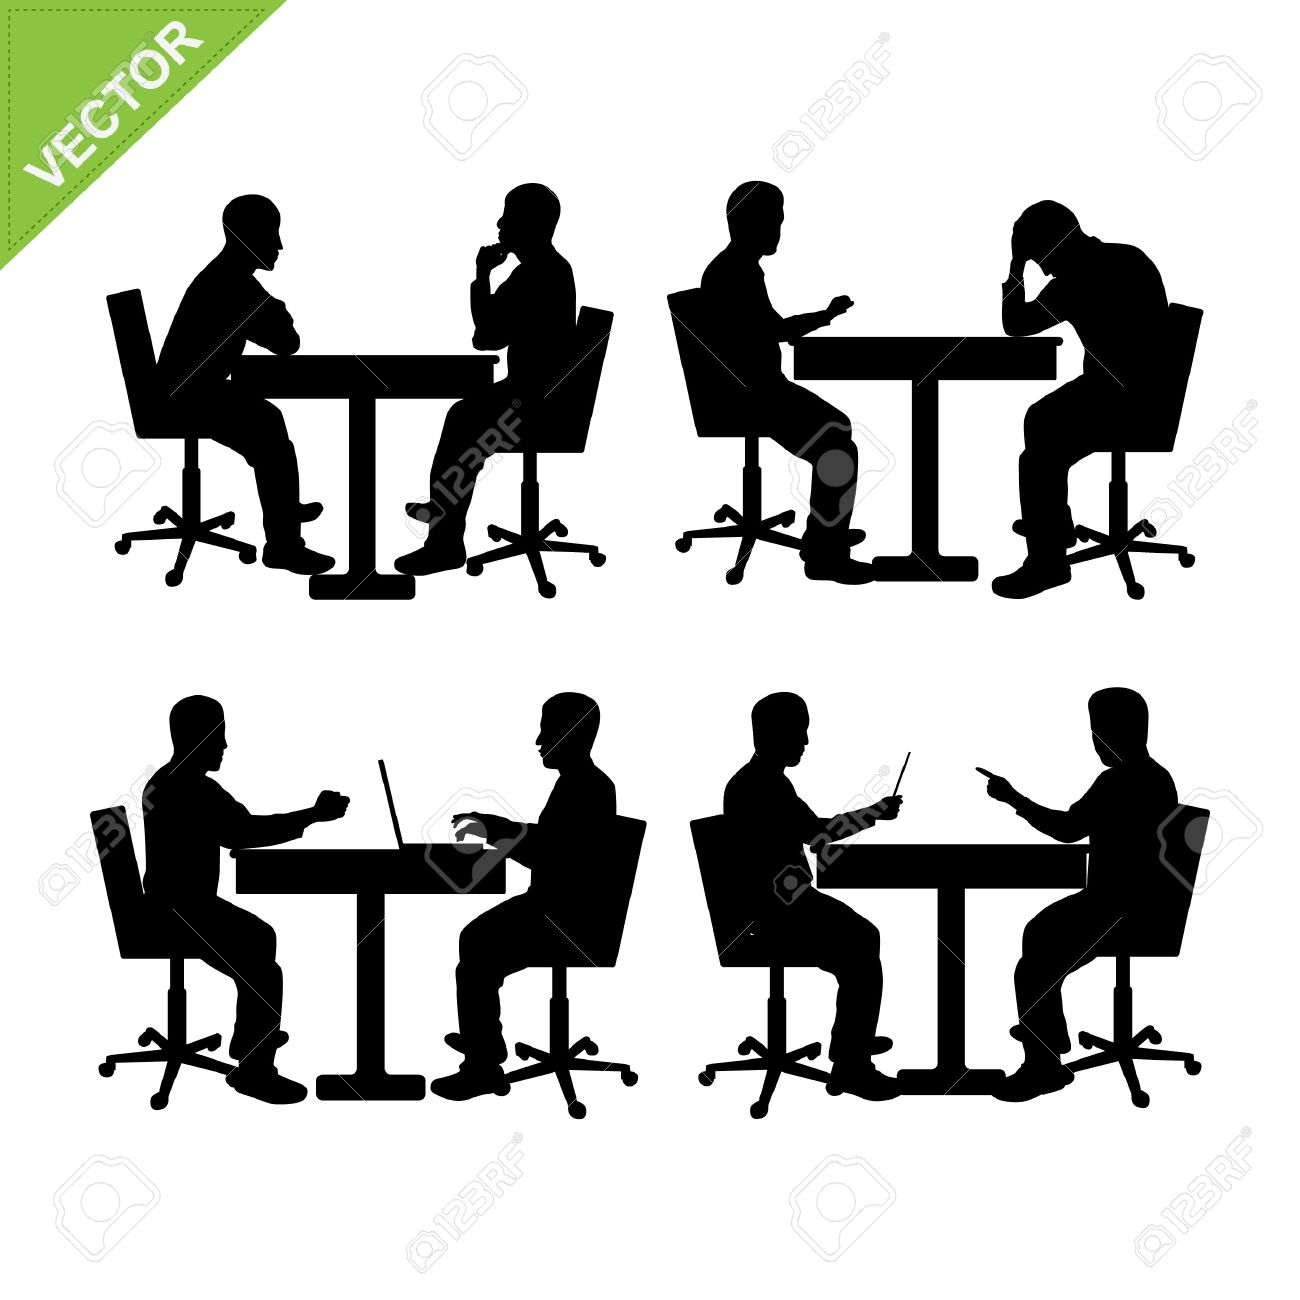 Business Man Meeting Silhouette Vector Royalty Free Cliparts.